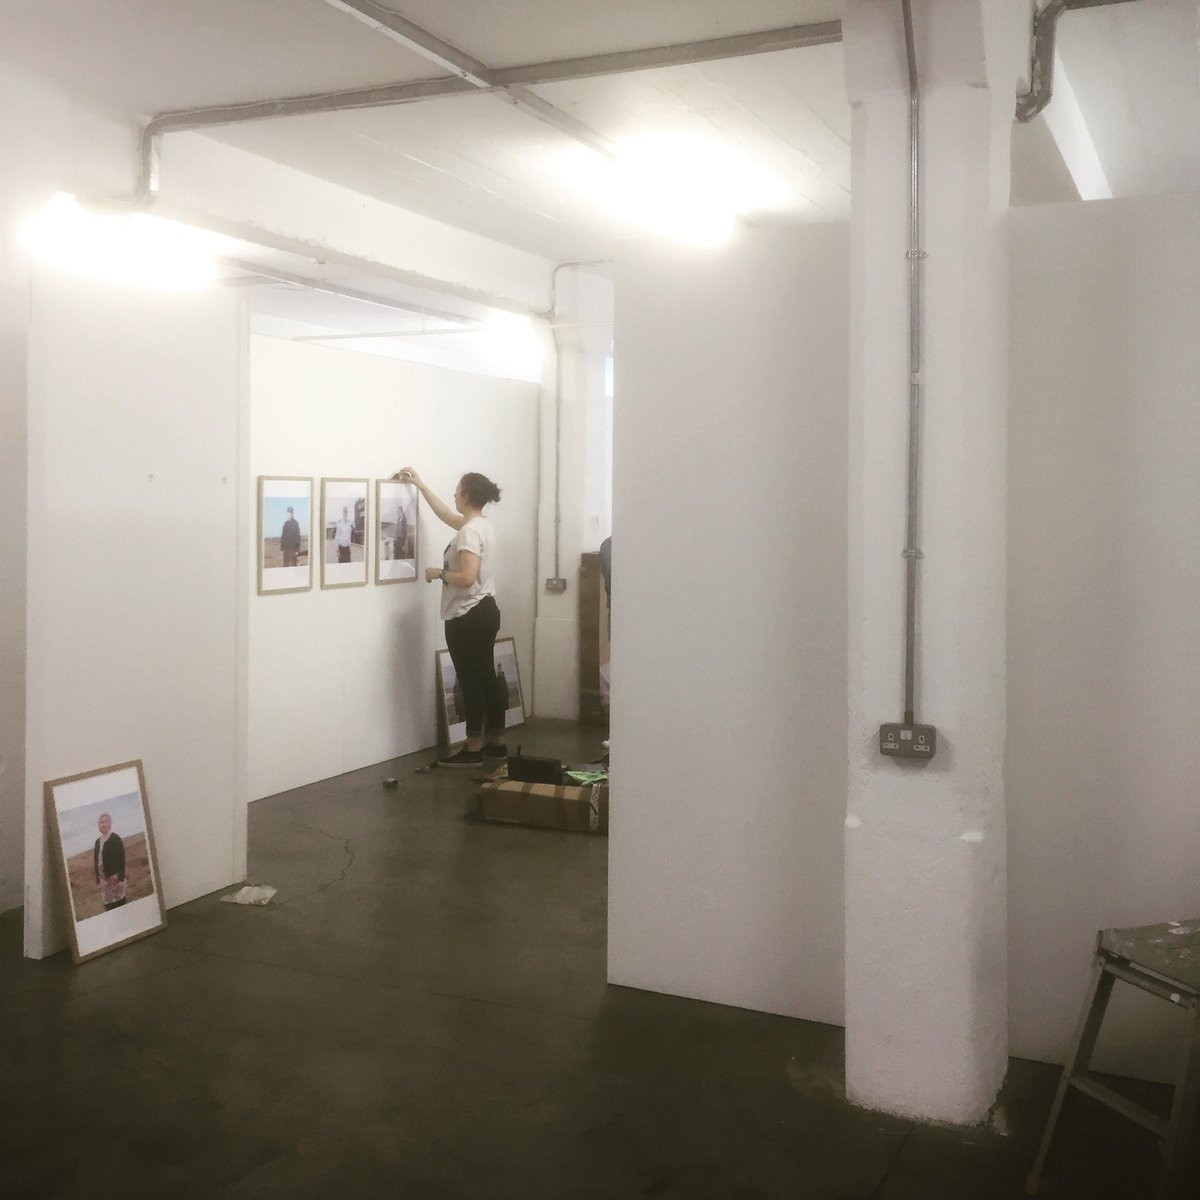 Installing exhibition walls for the Free Range Show at the Old Truman Brewery